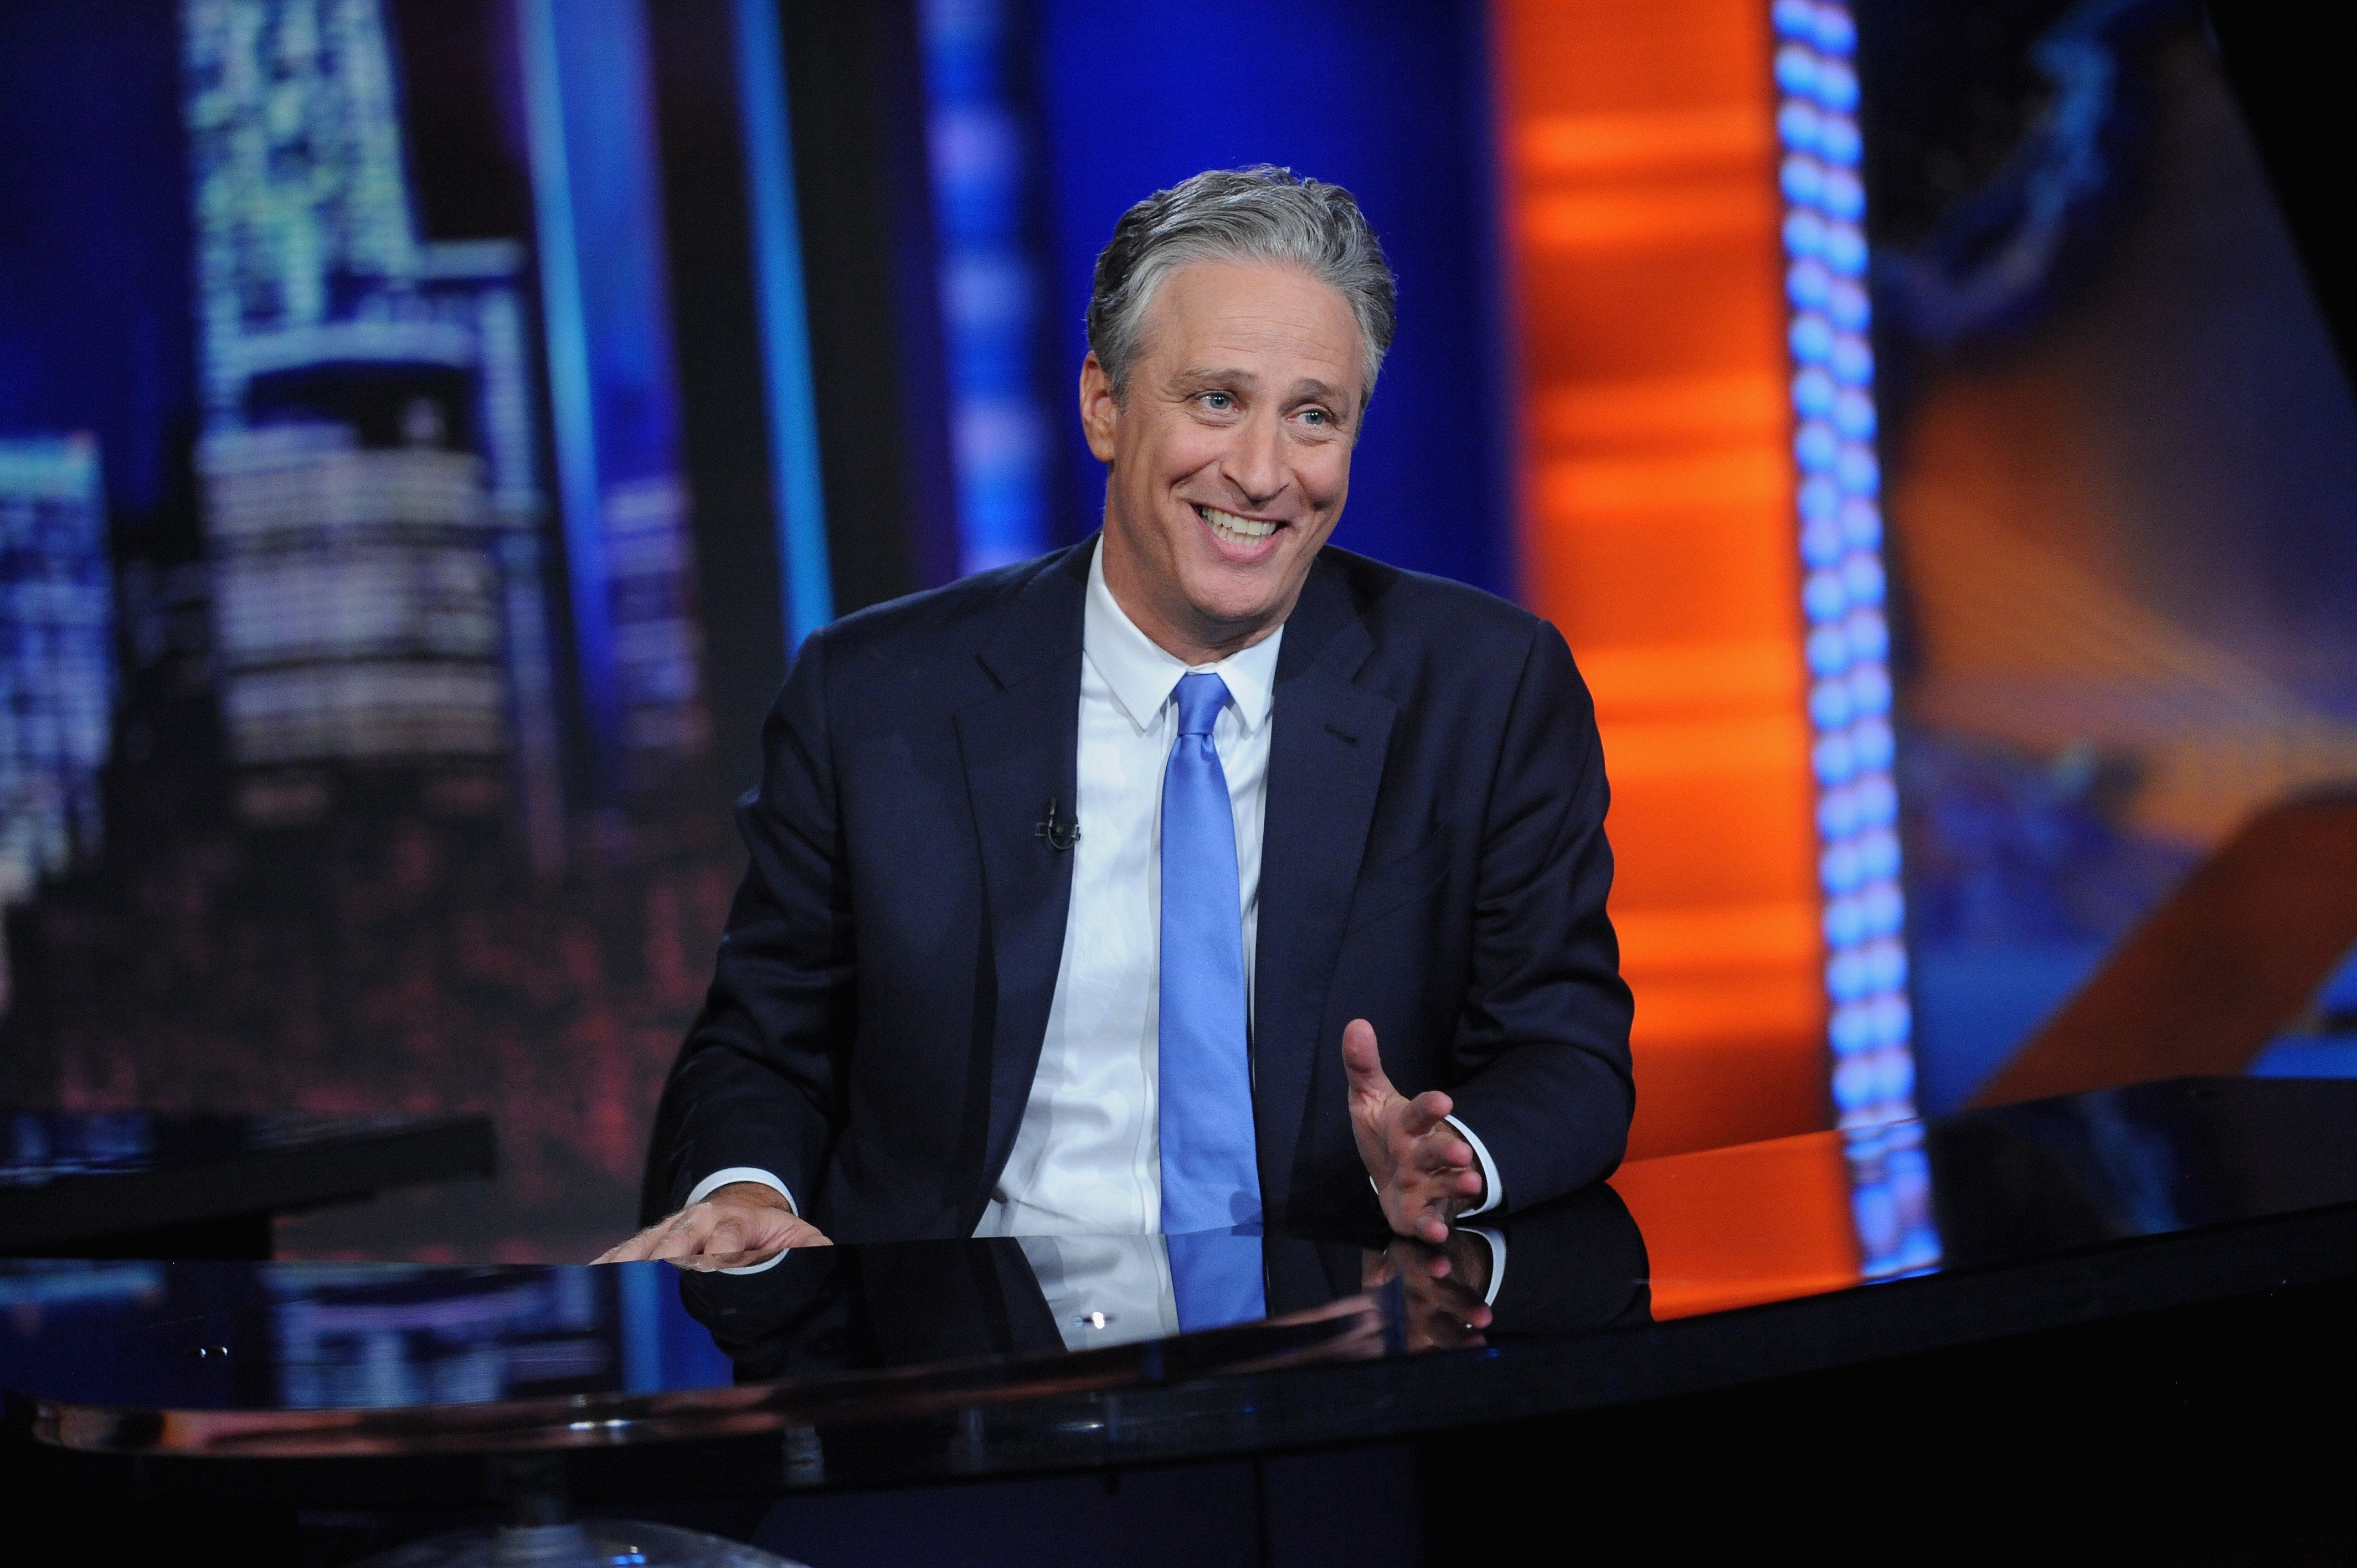 NEW YORK, NY - AUGUST 06:  Jon Stewart hosts 'The Daily Show with Jon Stewart' #JonVoyage on August 6, 2015 in New York City.  (Photo by Brad Barket/Getty Images for Comedy Central)